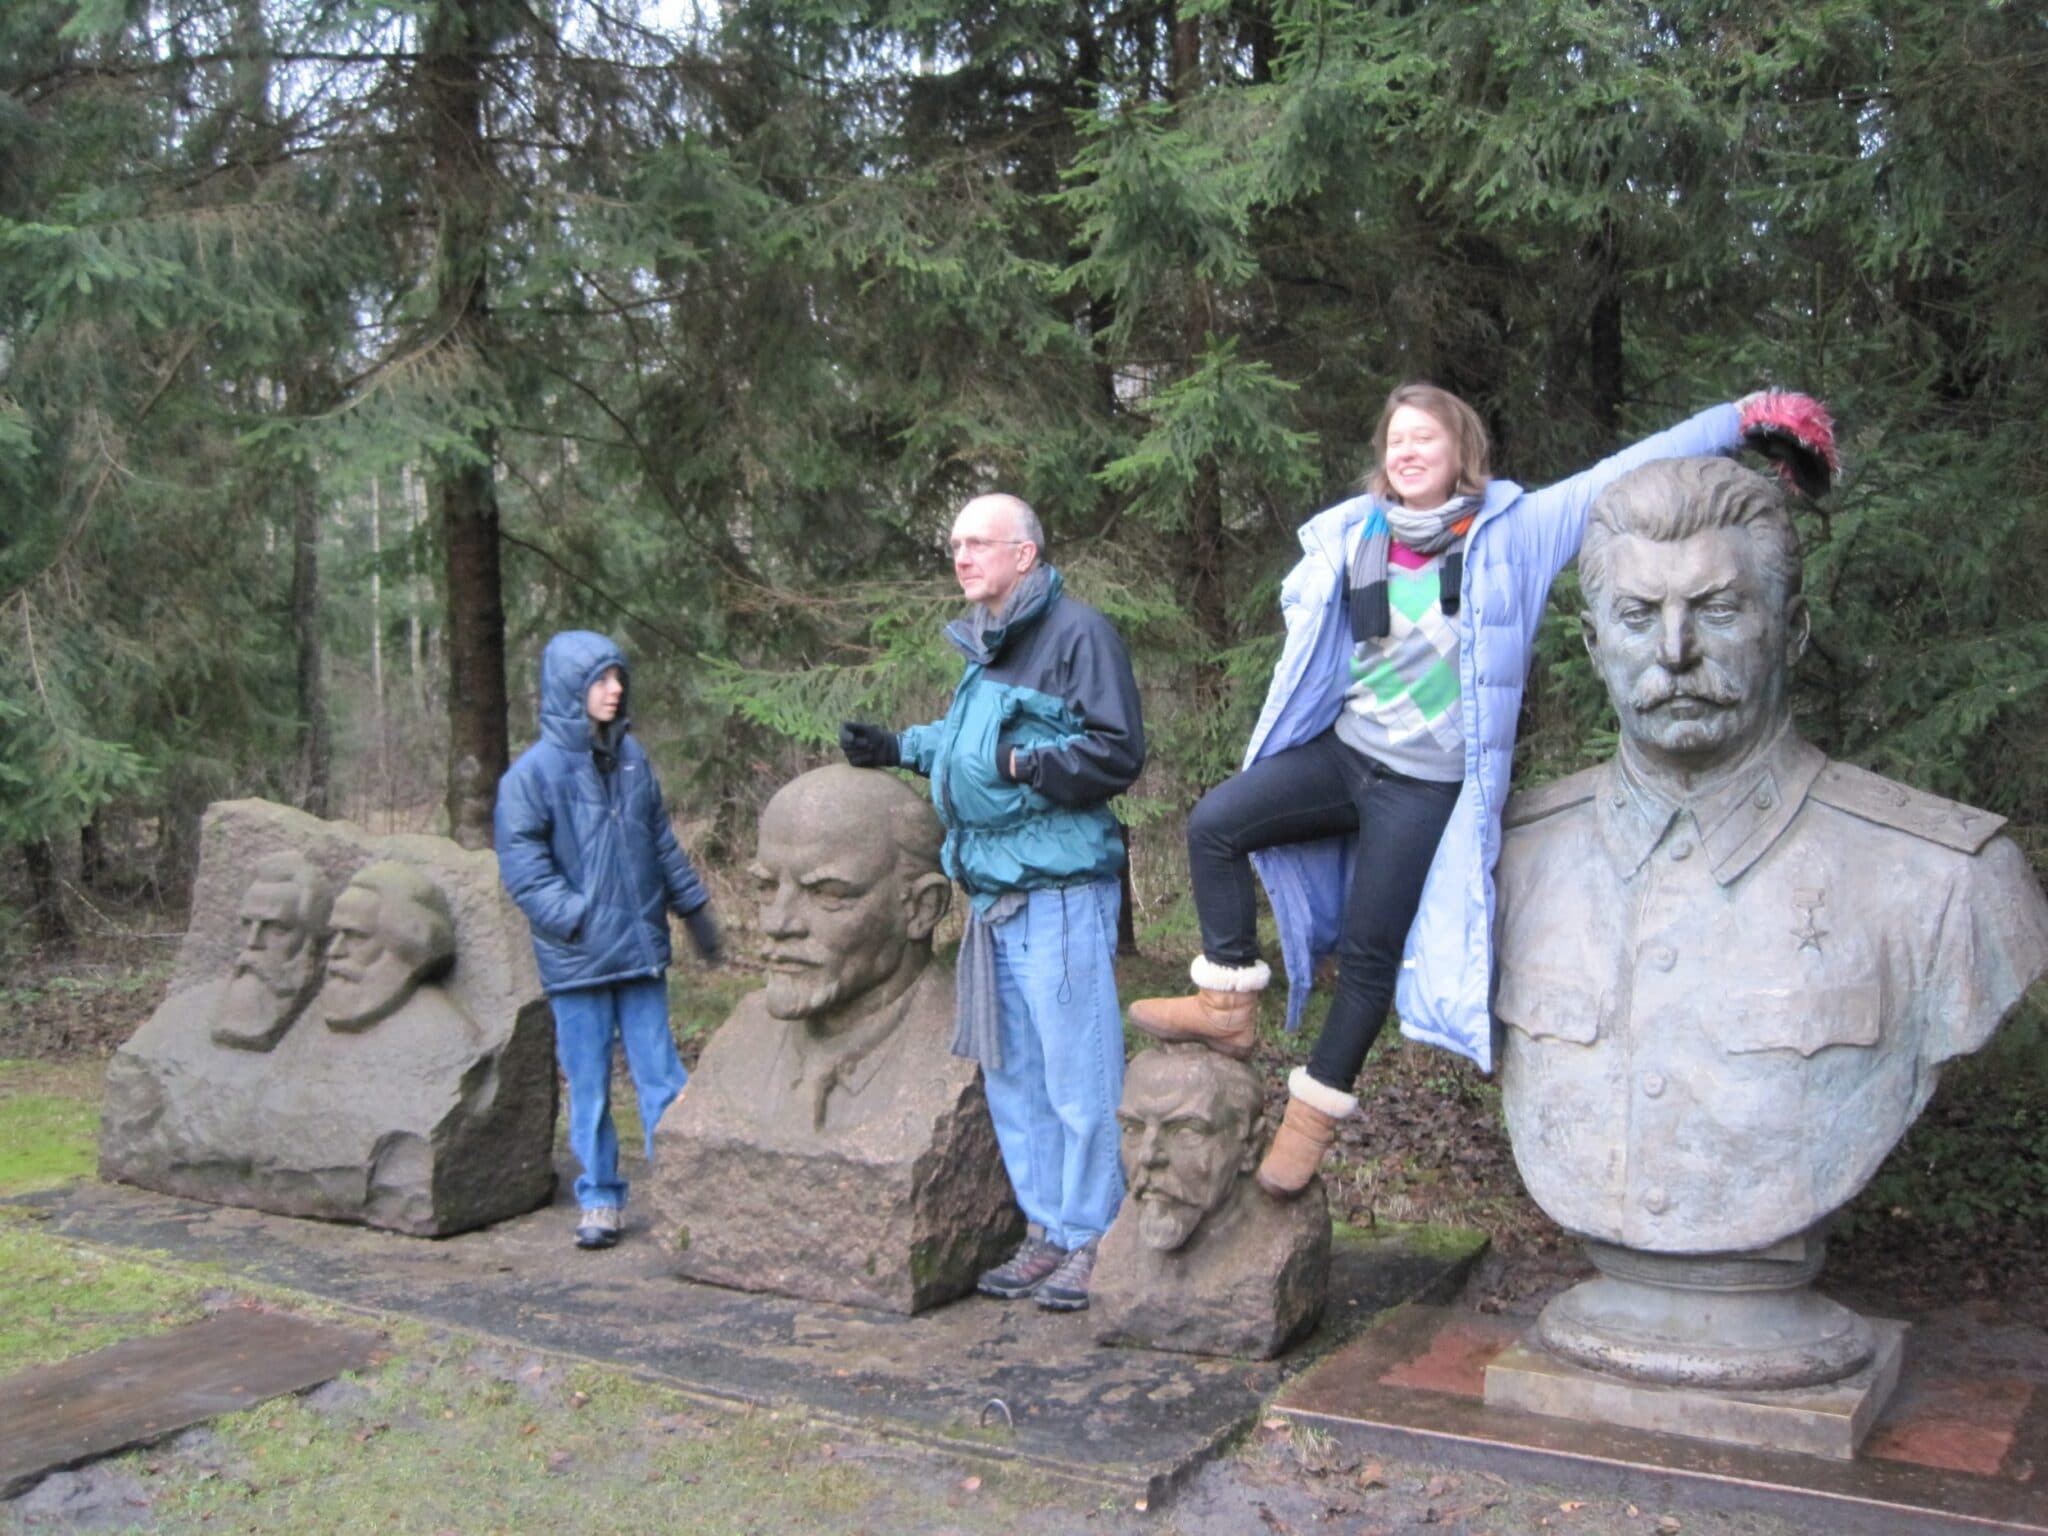 The author and family interact with statues of Marx, Engels, Lenin and Stalin that were previously located in the cities of Lithuania at Grutas park.